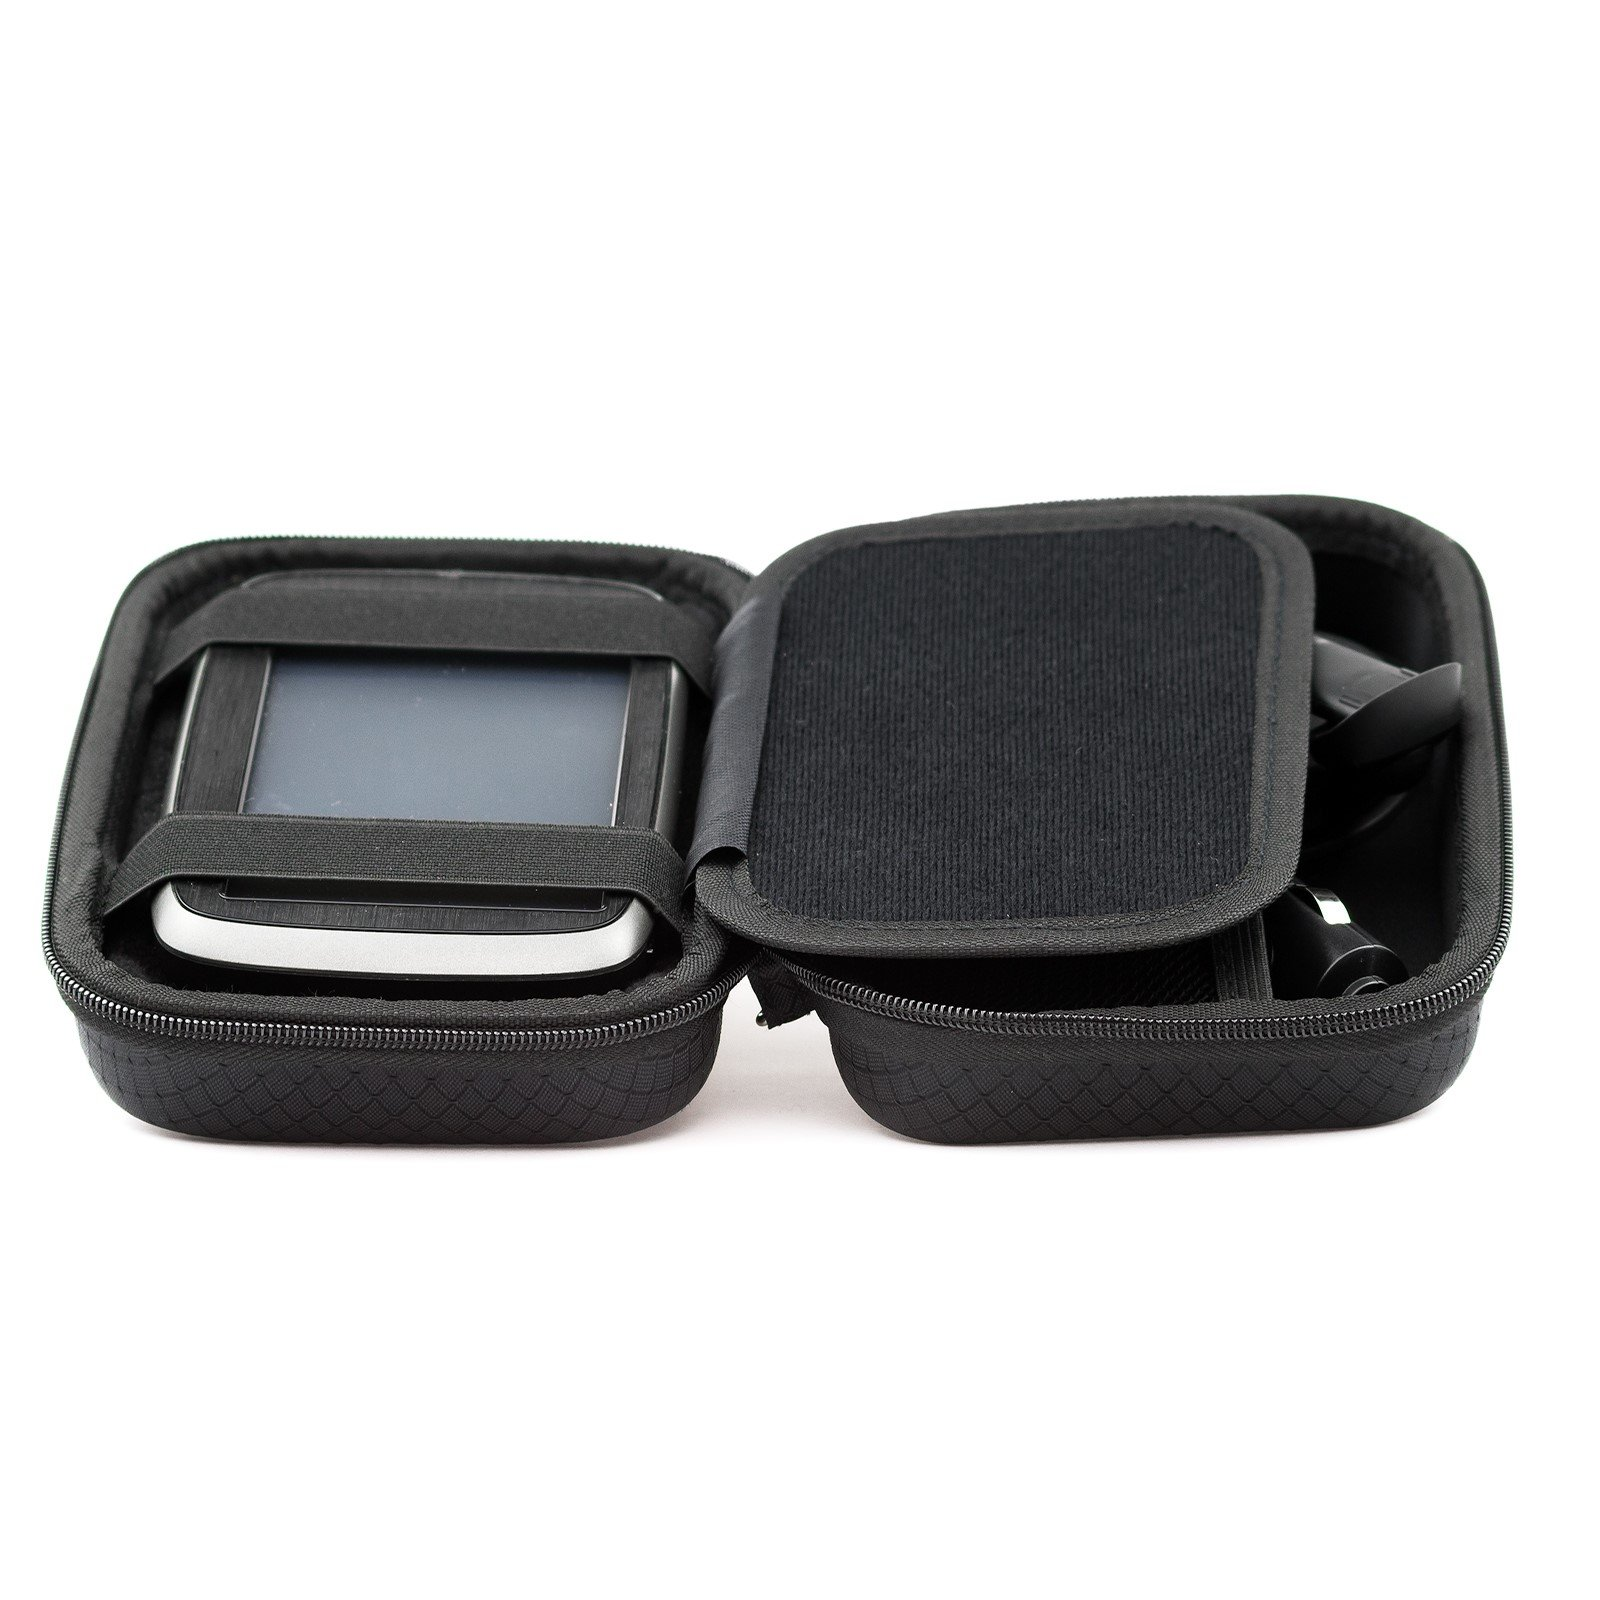 Digicharge Hard Carrying Case Tomtom Via 1425 1525 M SE 1425M 1525M 1525TM Go 52 Go 520 5200 Rider 500 550 Trucker 550 5-inch GPS Accessory Storage Lanyard - Black by Digicharge (Image #4)